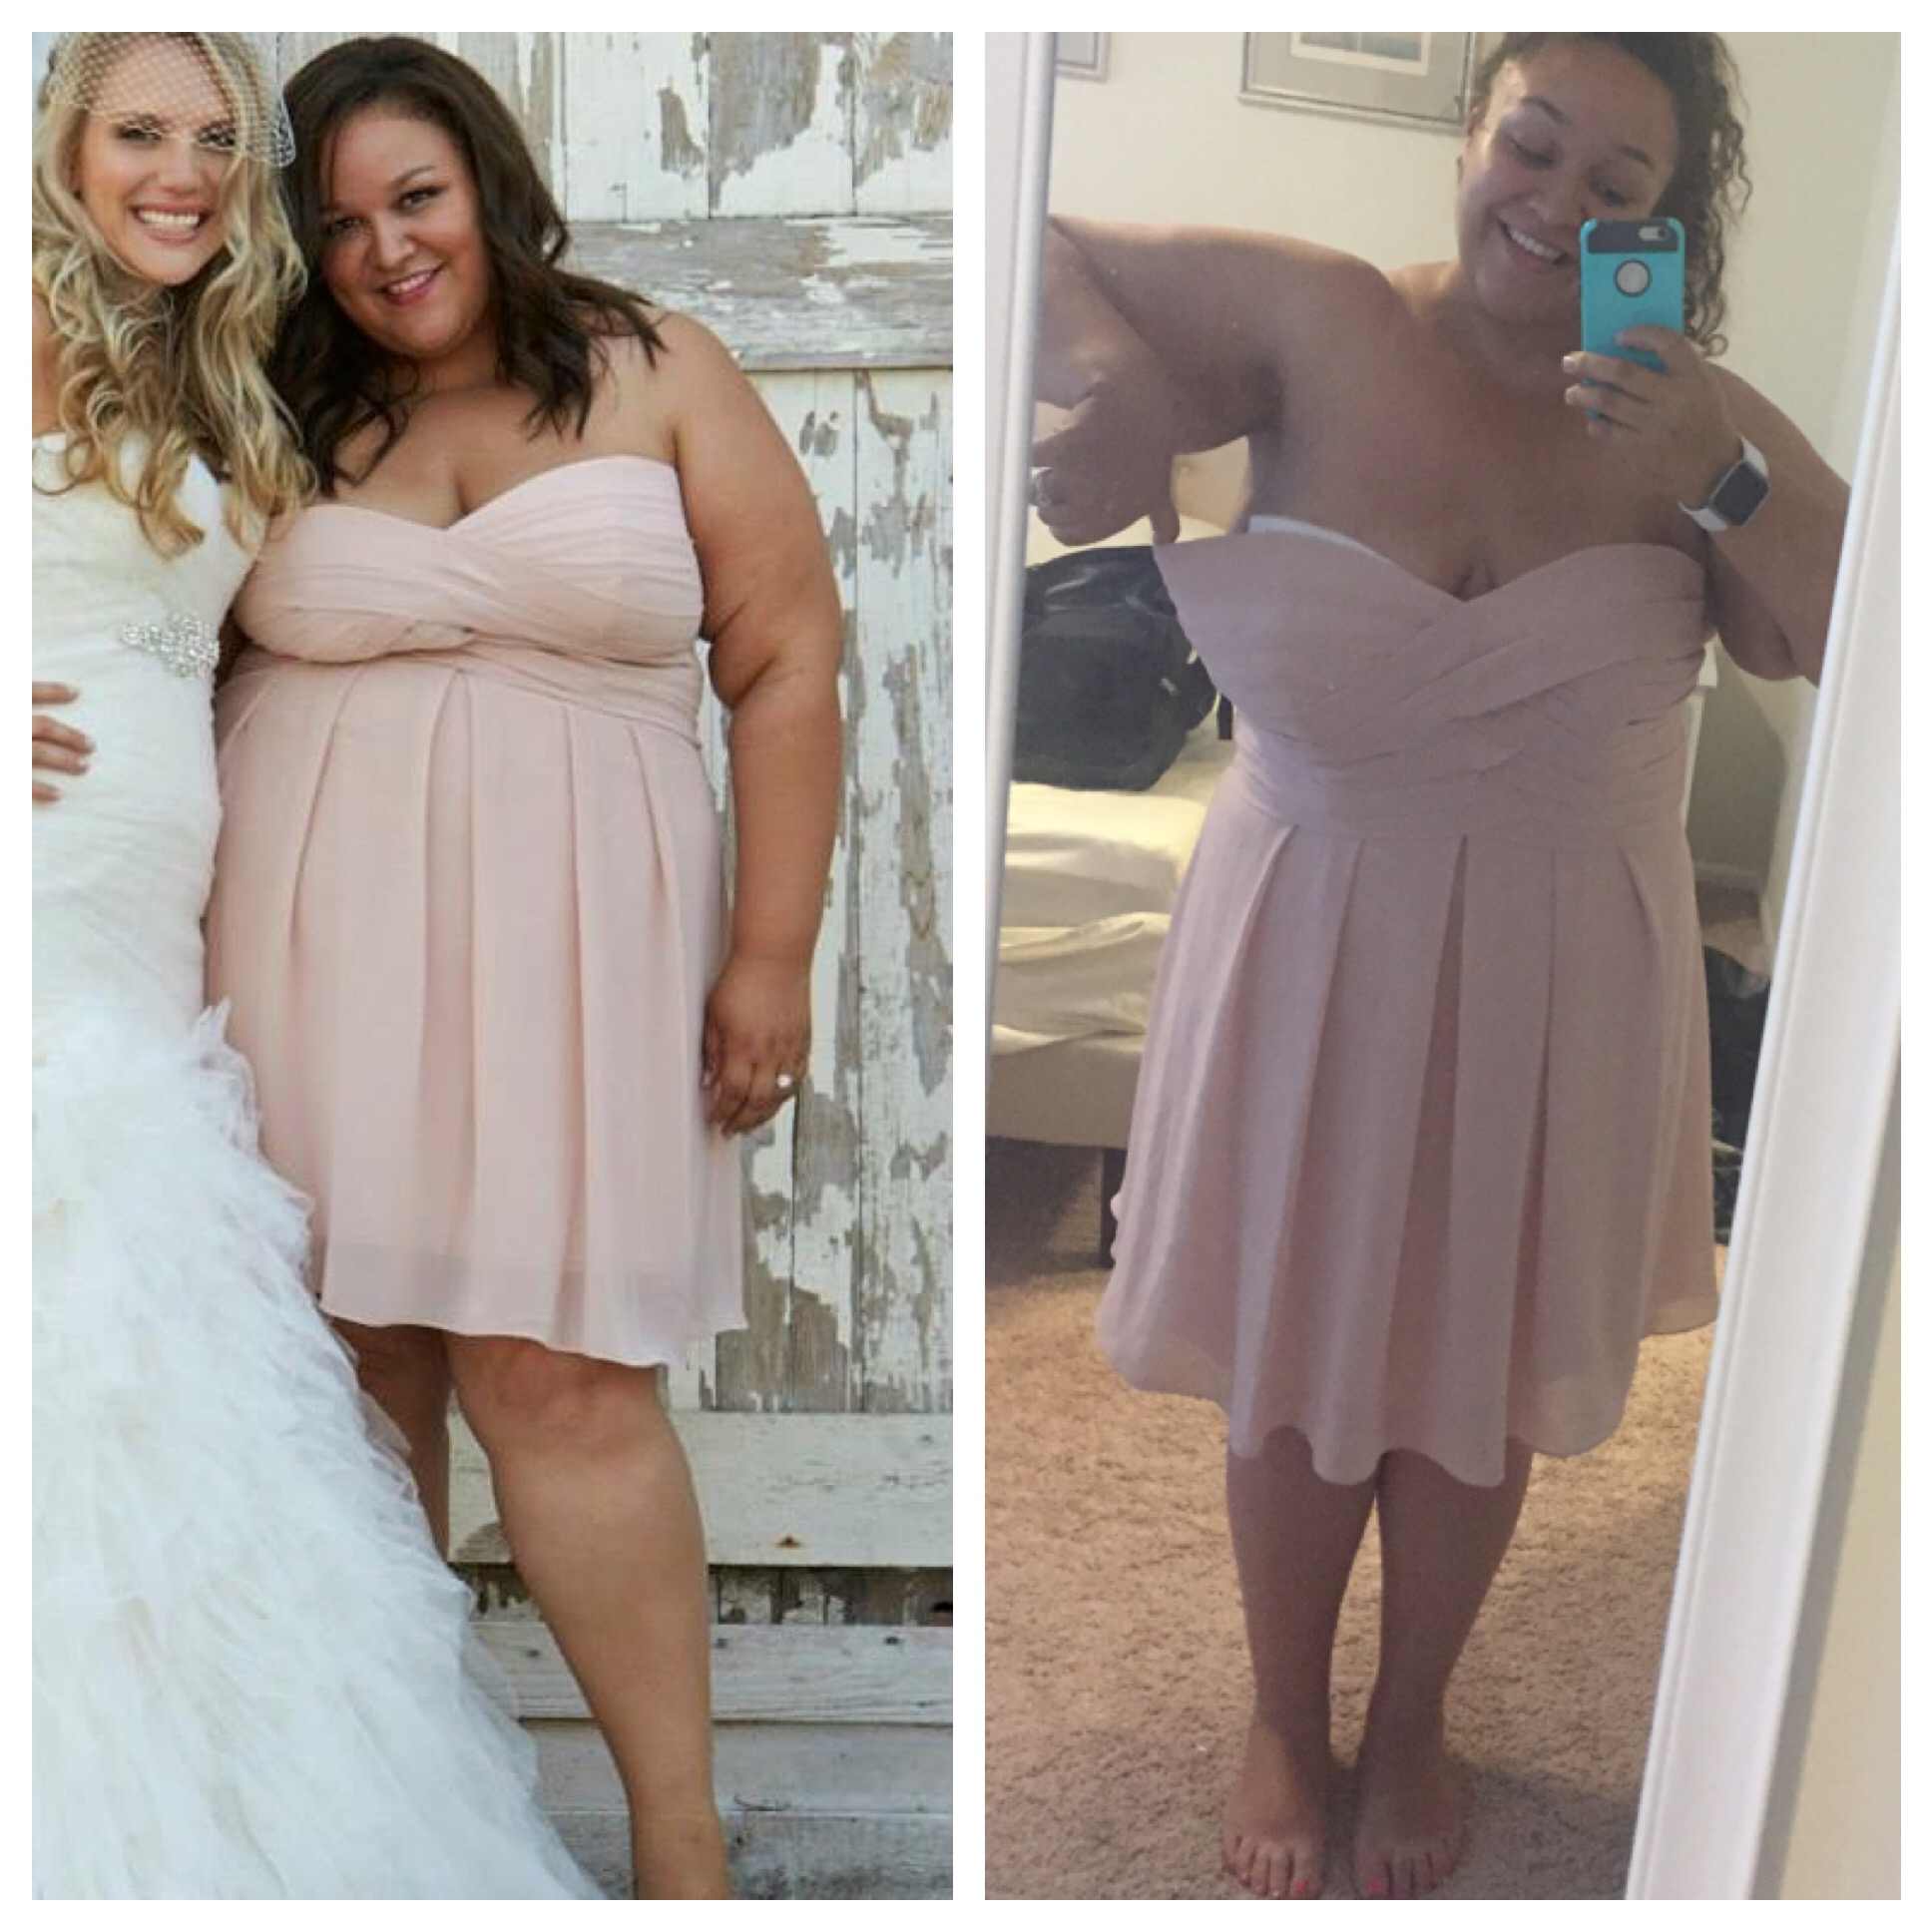 Kelsey lost 100 pounds! See my before and after weight loss pictures, and read amazing weight loss success stories from real women and their best weight loss diet plans and programs. Motivation to lose weight with walking and inspiration from before and after weightloss pics and photos.